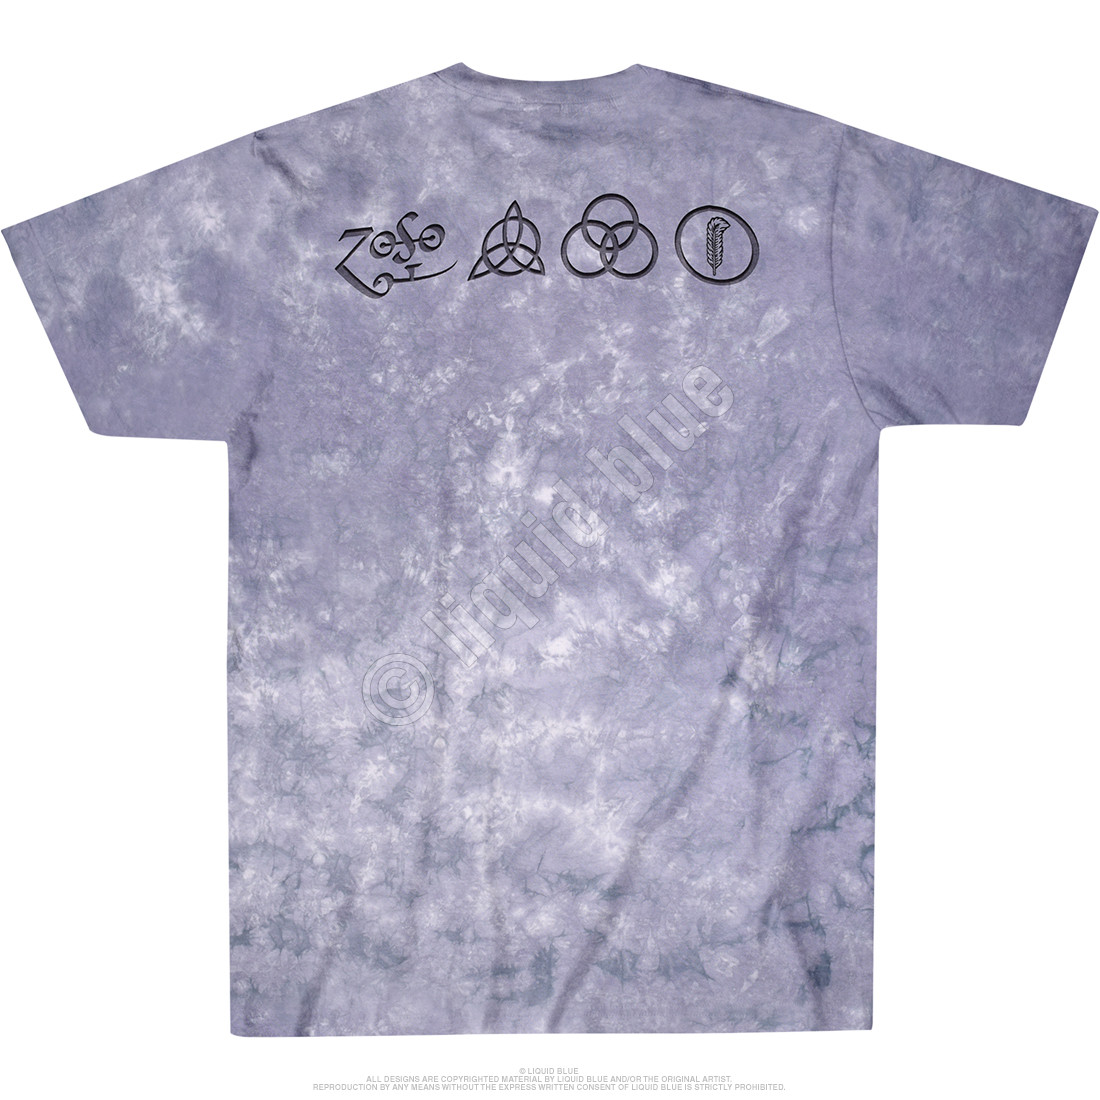 Man With Sticks Tie-Dye T-Shirt